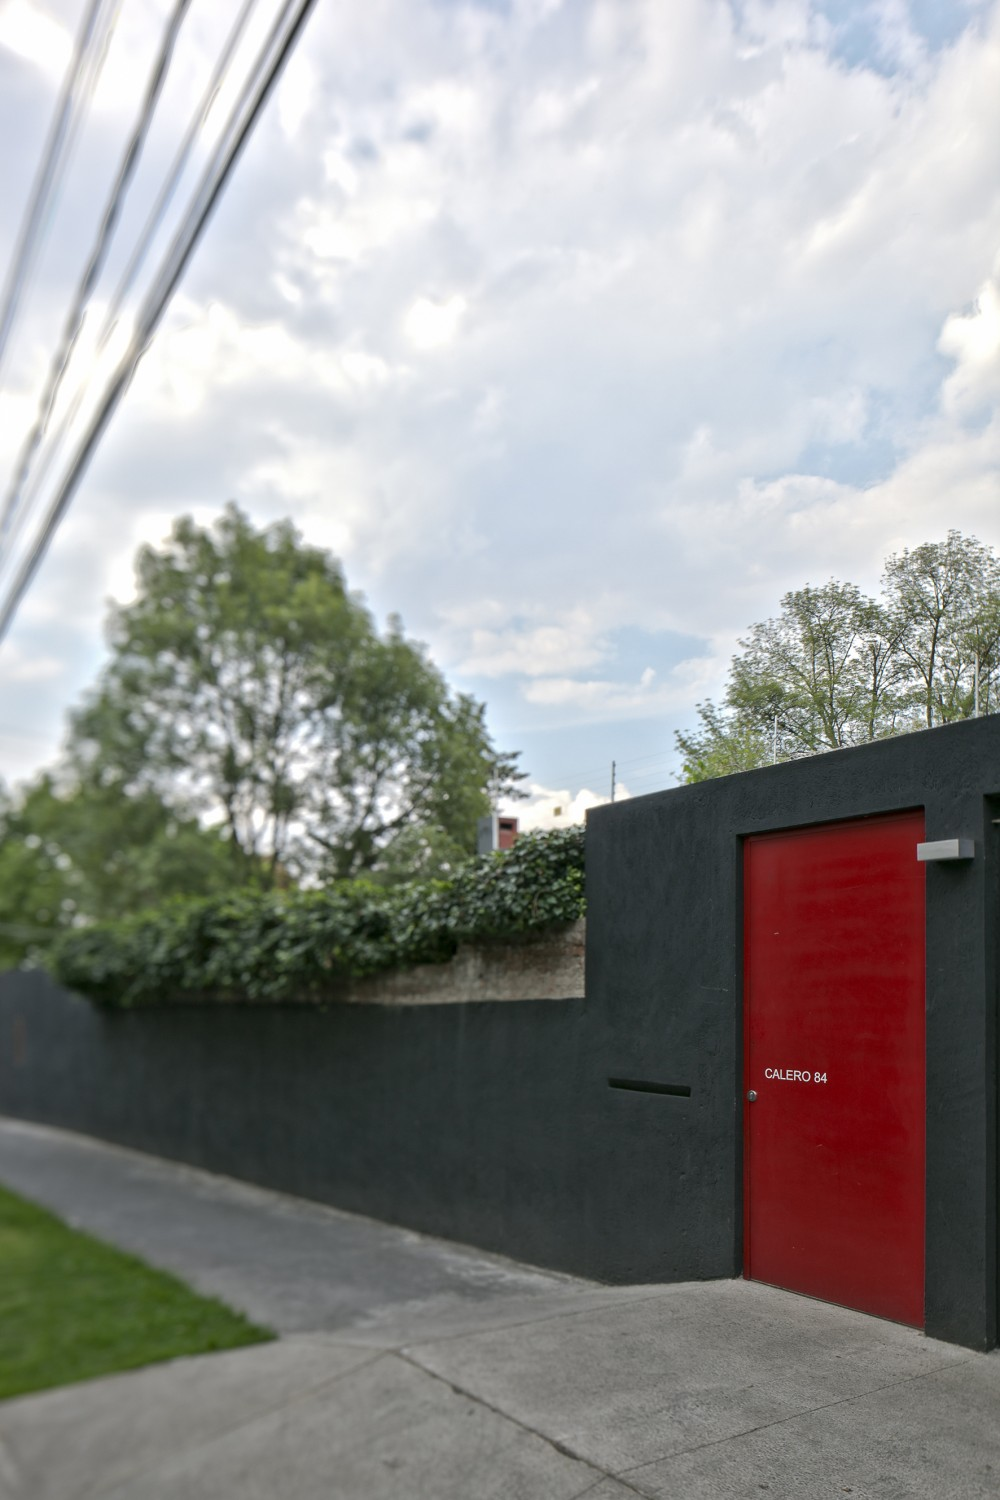 Beautiful Touch Of Decor In Modern Residence: Wonderful Exterior Calero House With Grey Wall Decoration And Red Door